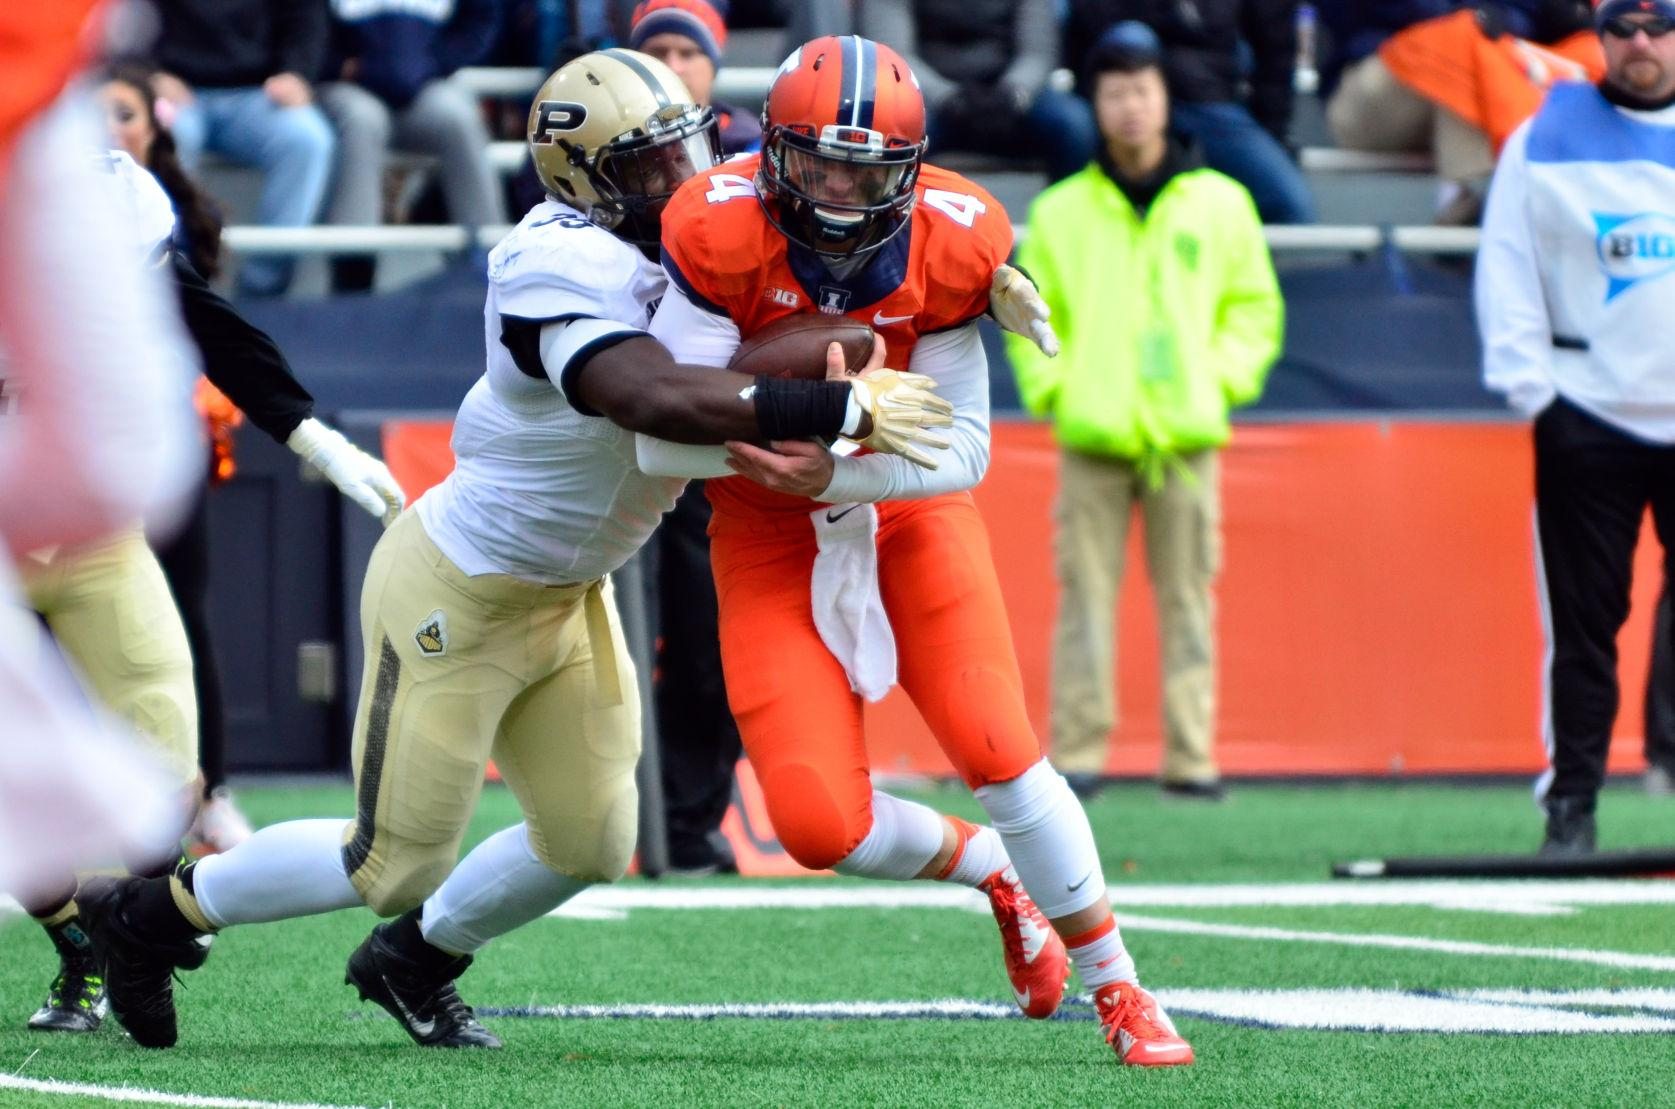 Illinois' Reilly O'Toole is sacked by Purdue's Ja'Whaun Bentley on Oct. 4. O'Toole came in to his freshman year as the backup quarterback for Nathan Scheelhaase. Entering this season as a senior, he was slated as the backup to transfer Wes Lunt.